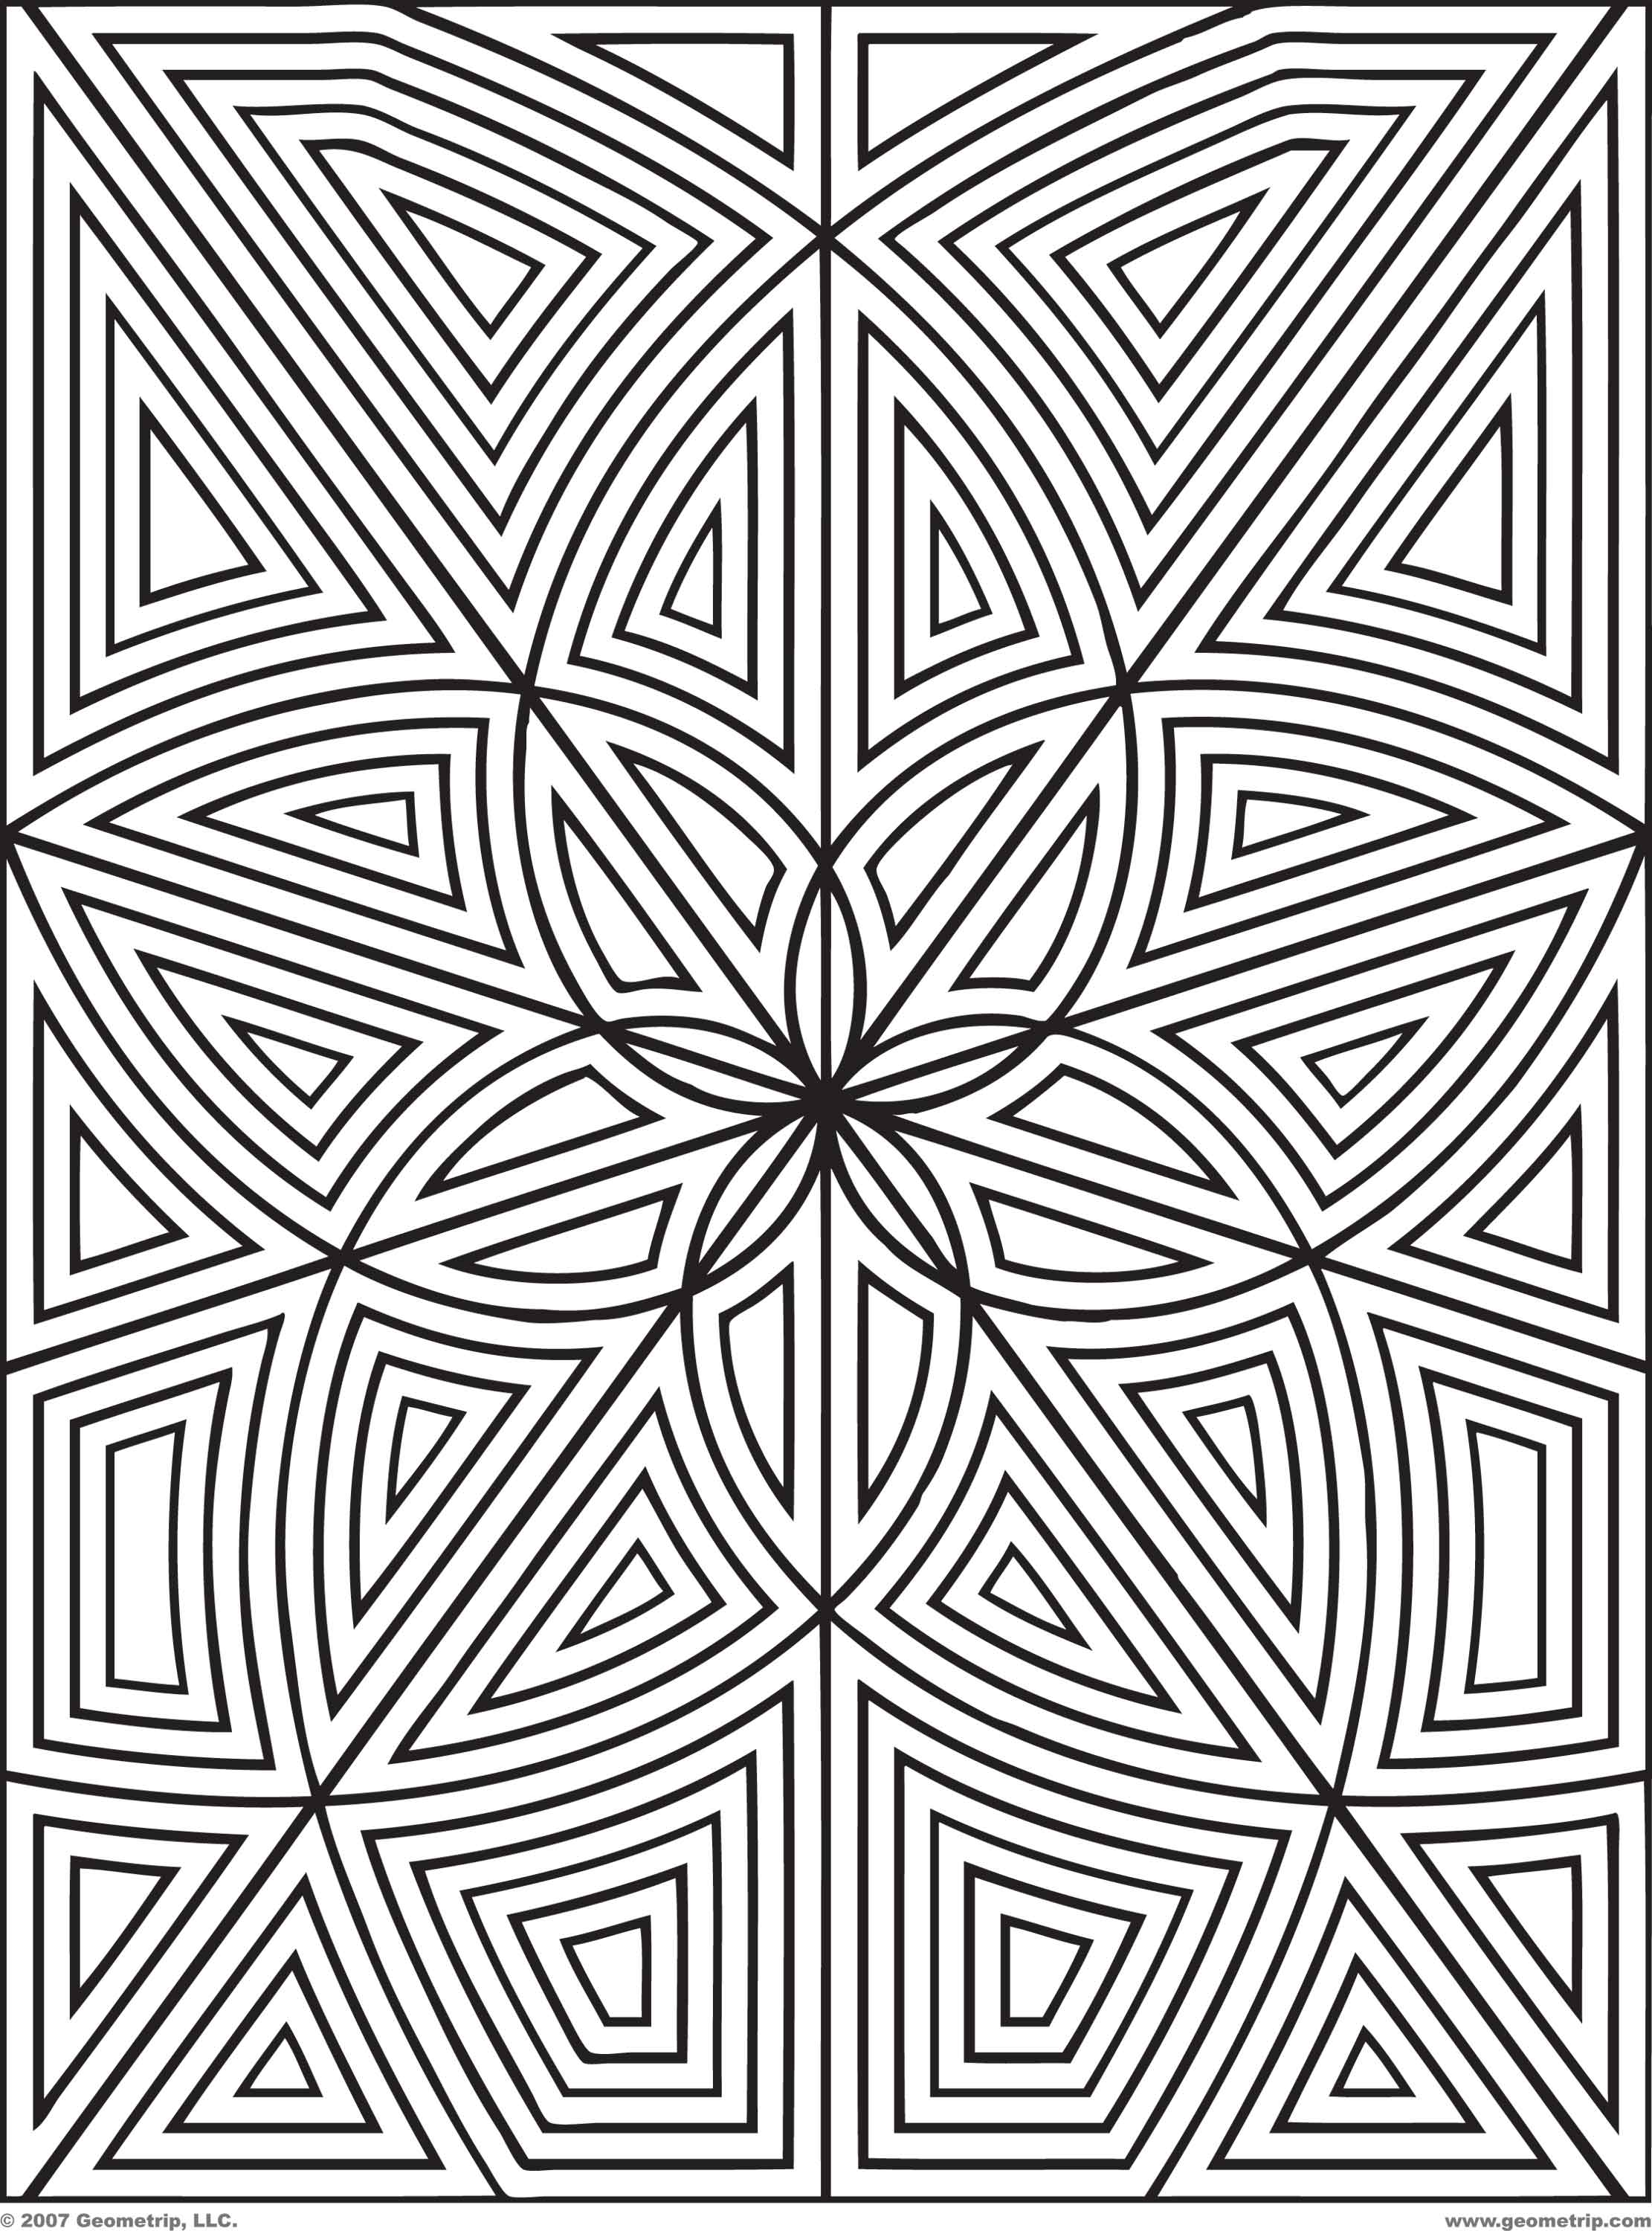 Geometric Shape Coloring Pages Coloring Home Advanced Geometric Coloring Pages